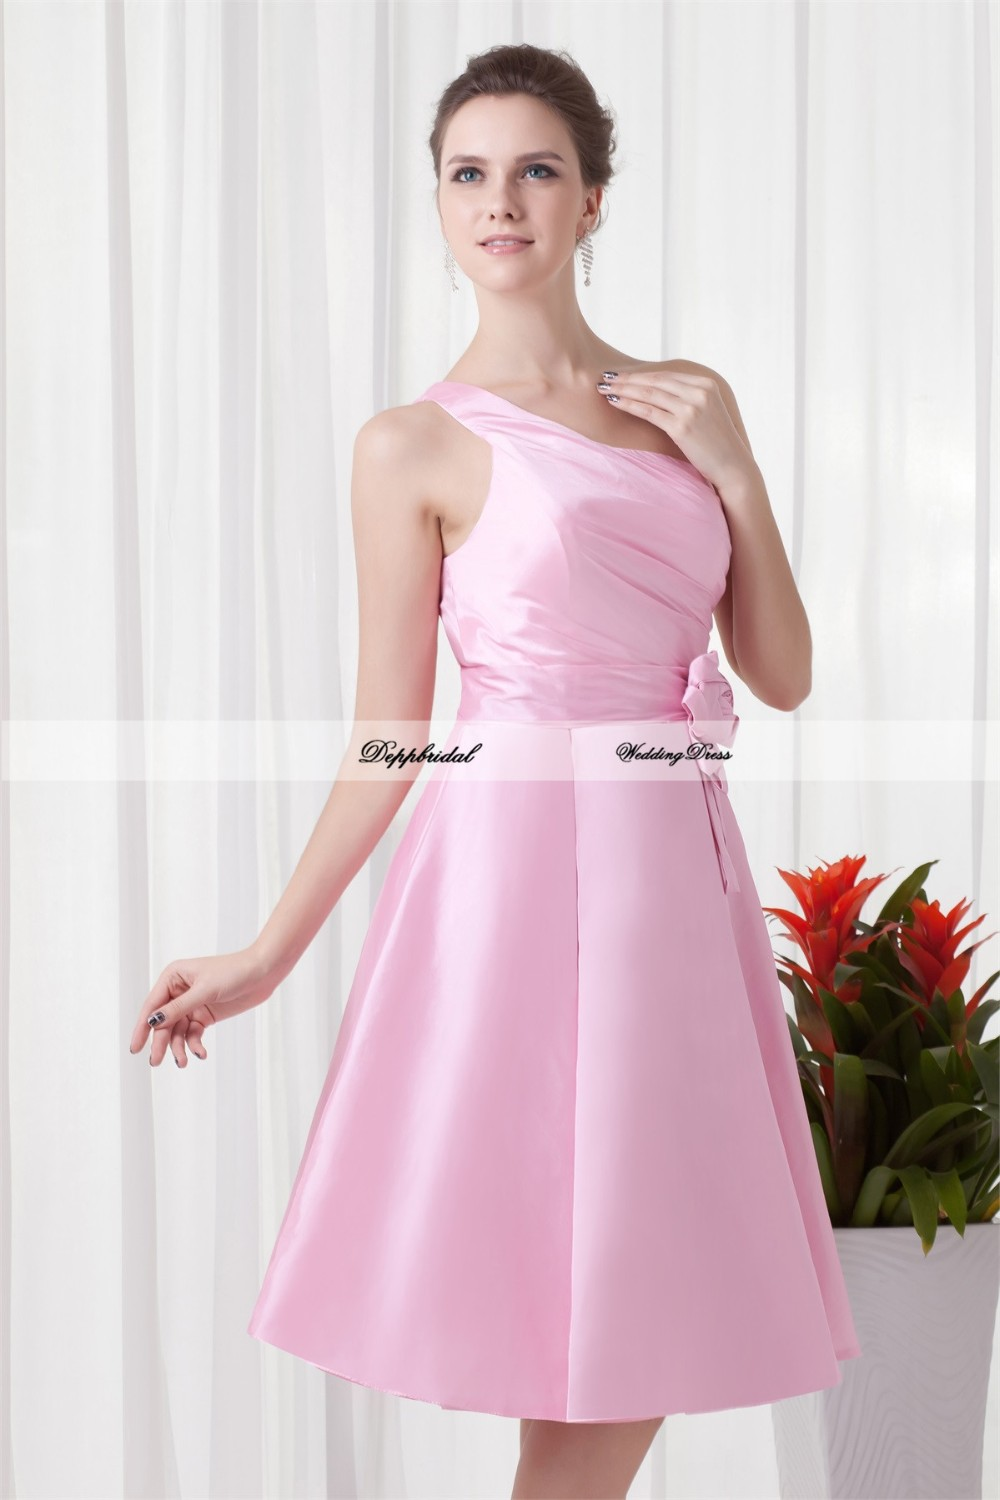 Handmade-Flower-s-A-Line-Tea-Length-One-Shoulder-Bridesmaid-Dresses-22708-80845